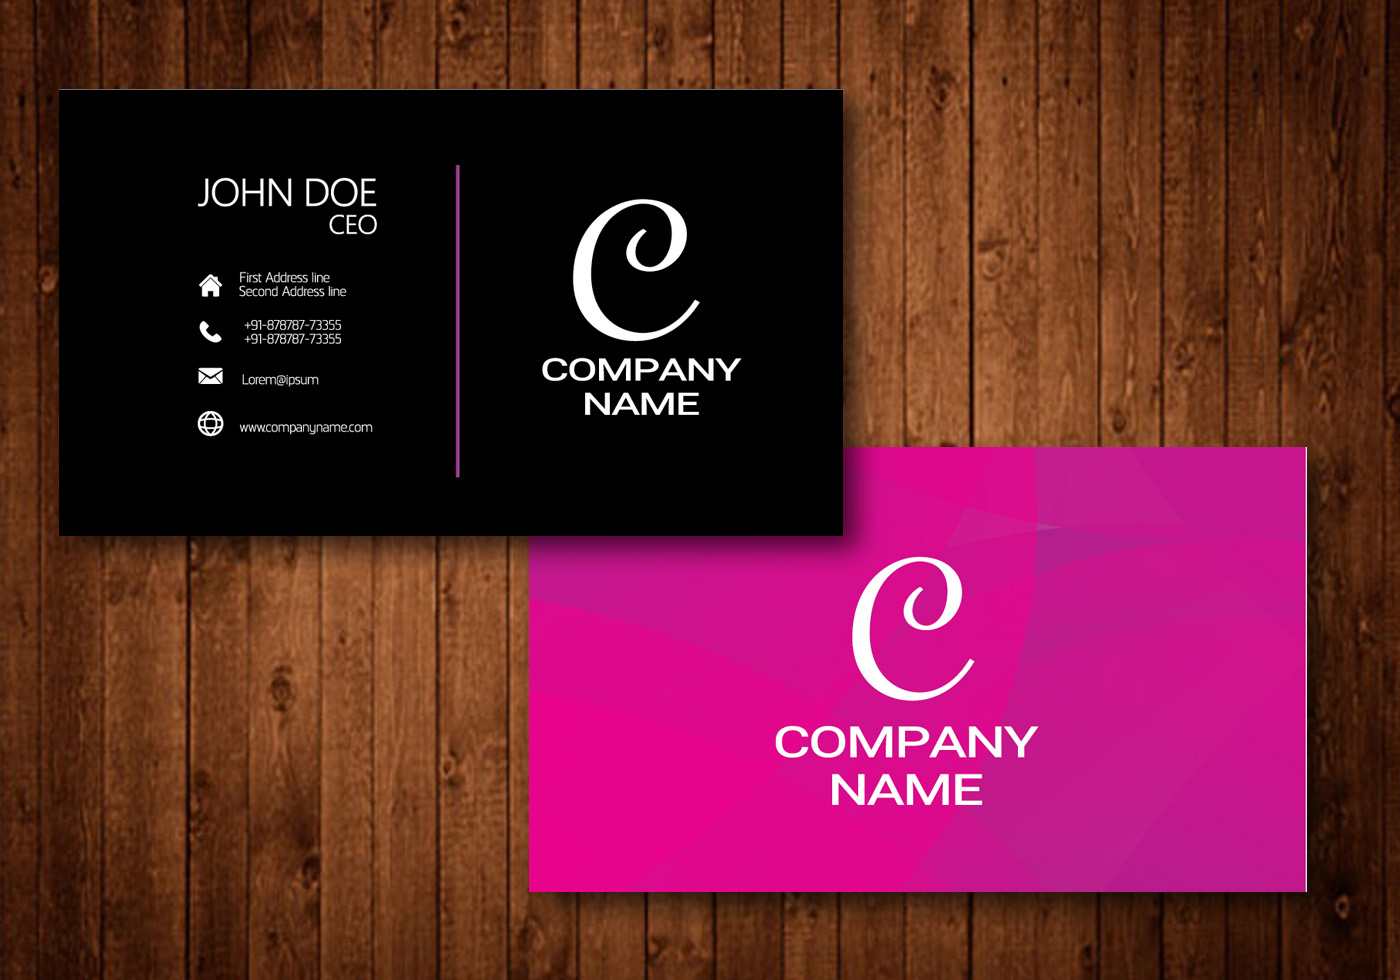 business cards backgrounds - photo #34